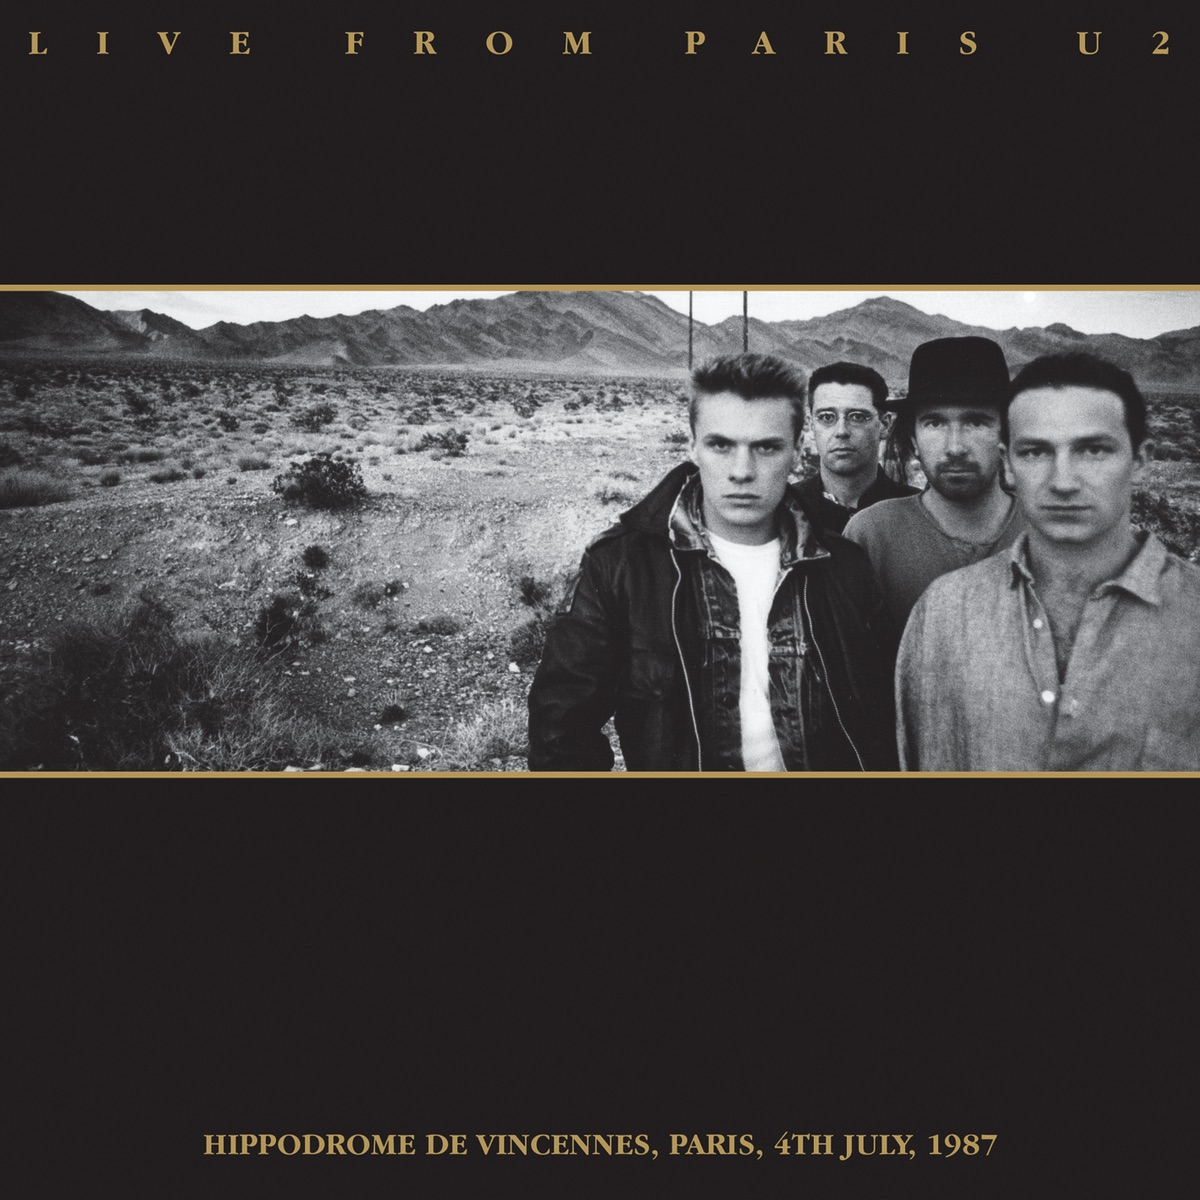 Live from Paris U2 CD cover